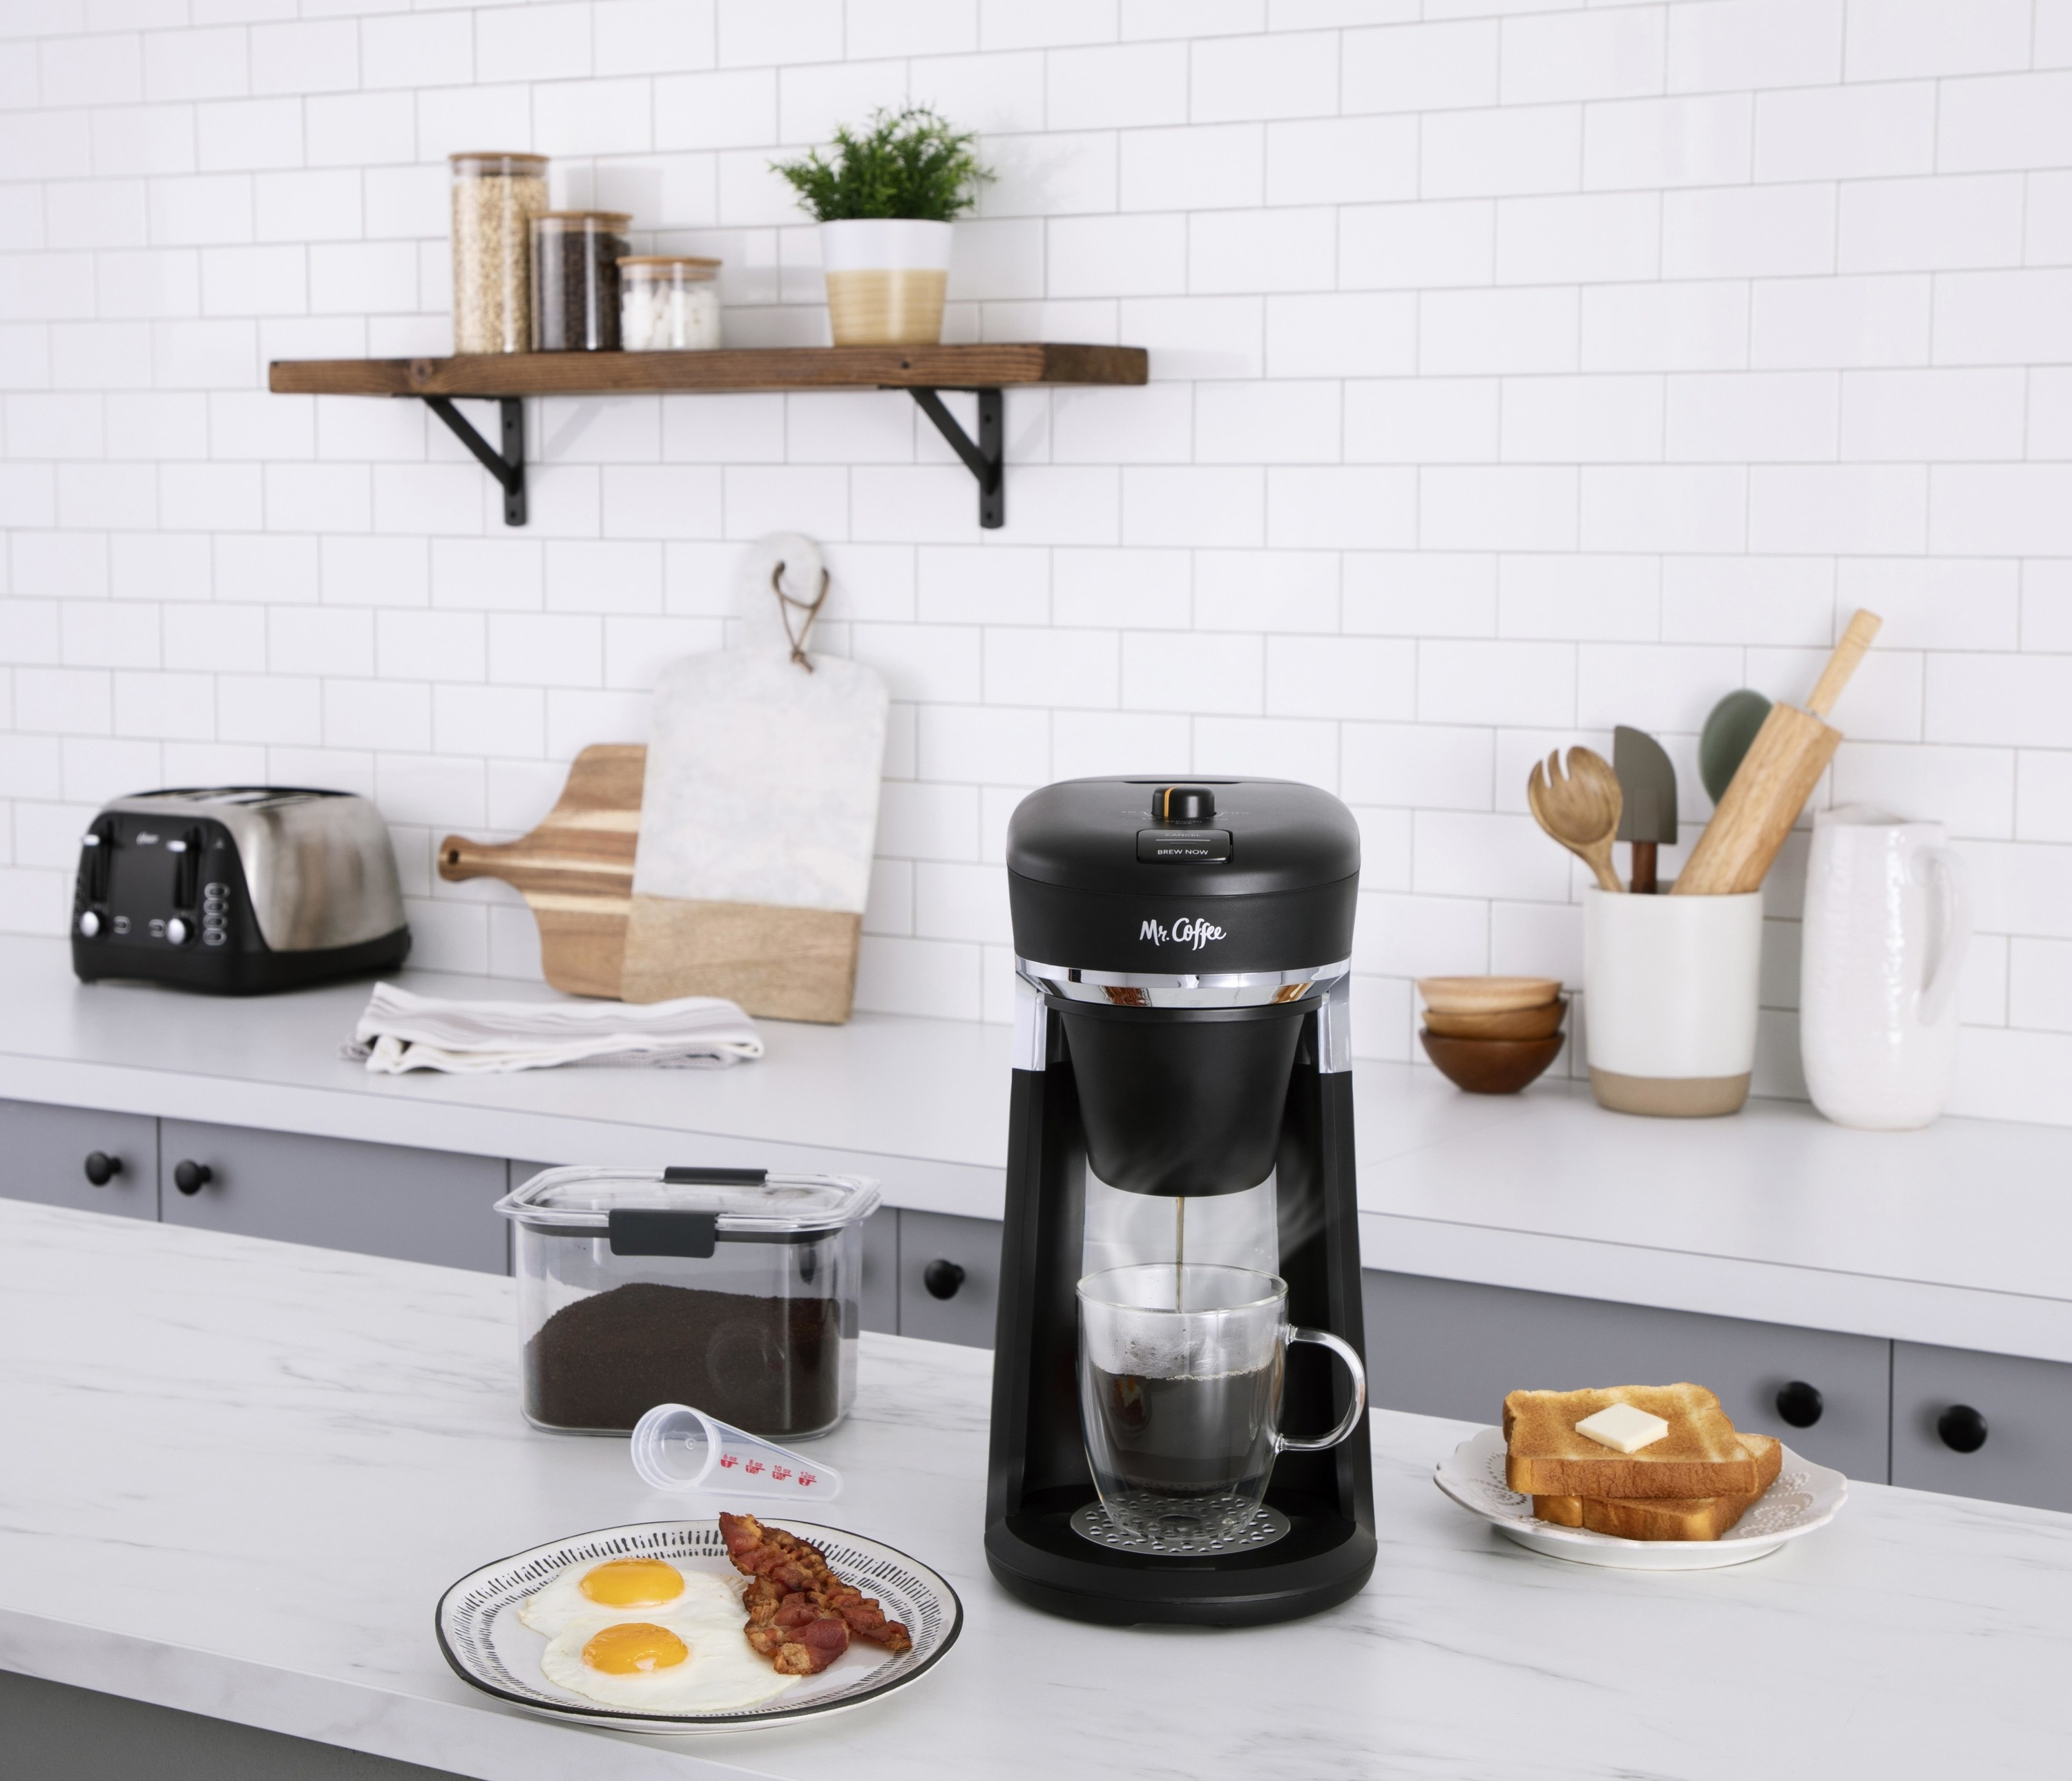 The coffee maker surrounded by breakfast in a kitchen